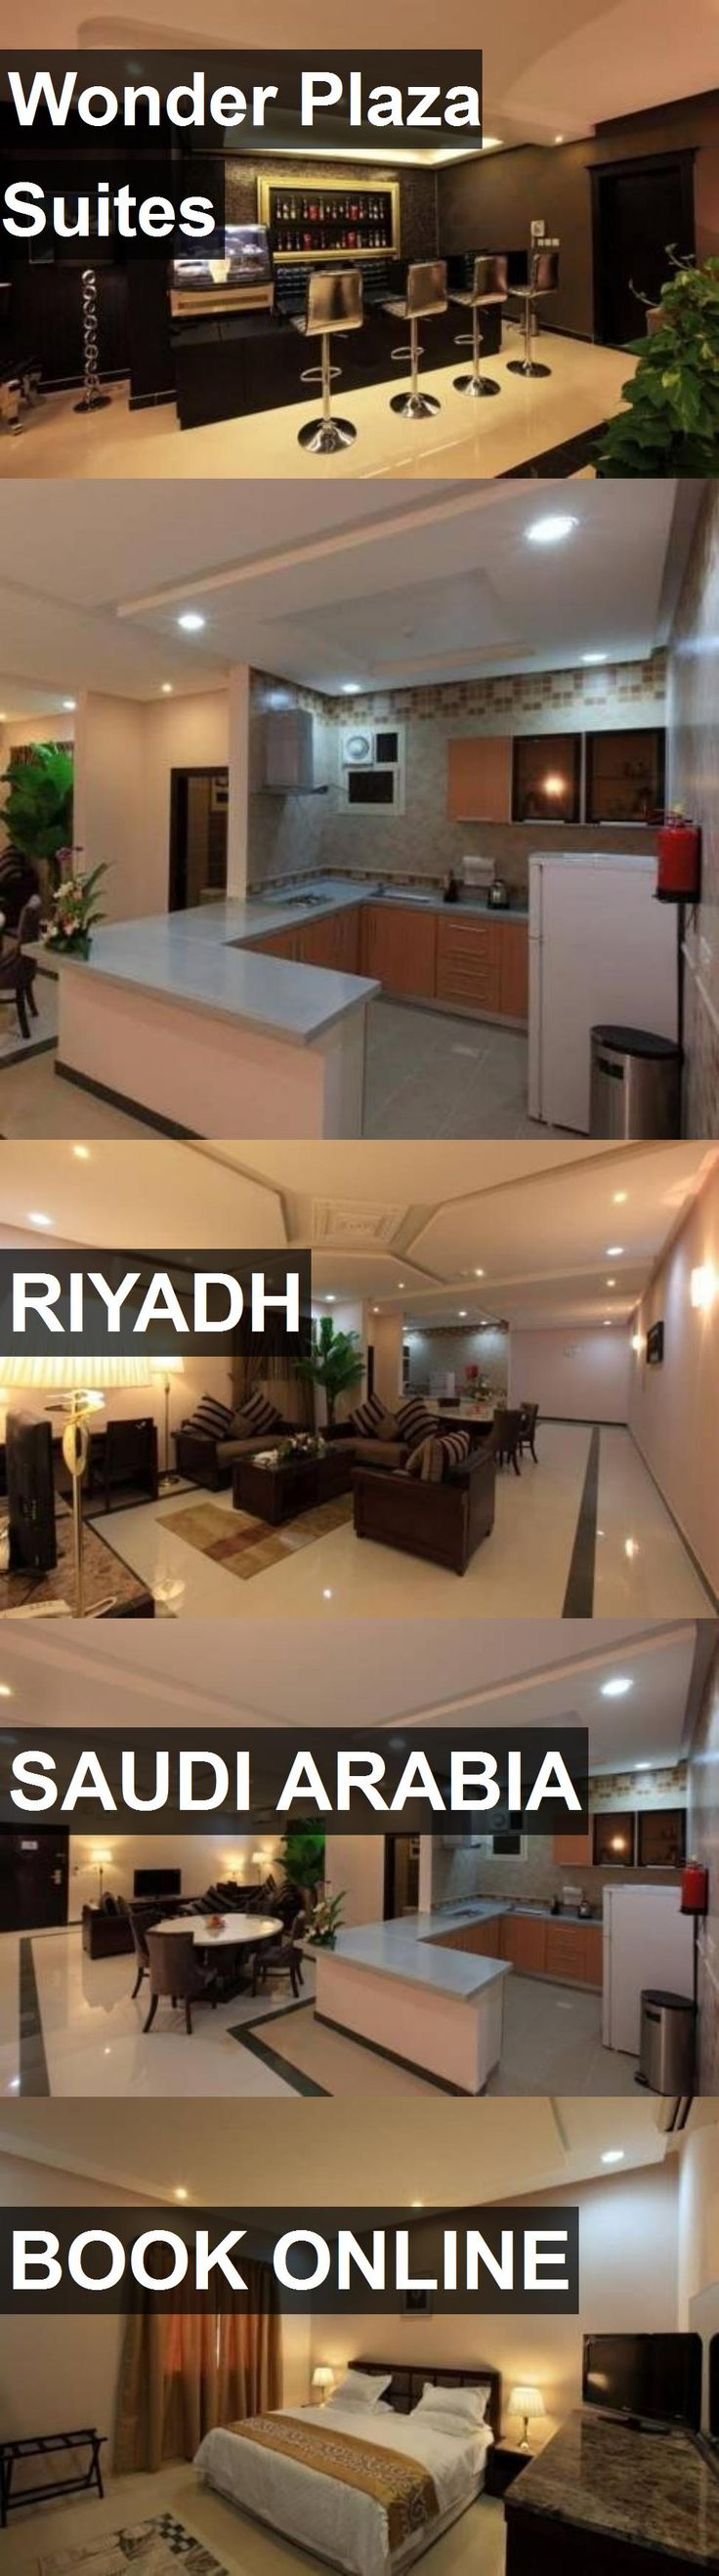 Hotel Wonder Plaza Suites in Riyadh, Saudi Arabia. For more information, photos, reviews and best prices please follow the link. #SaudiArabia #Riyadh #WonderPlazaSuites #hotel #travel #vacation